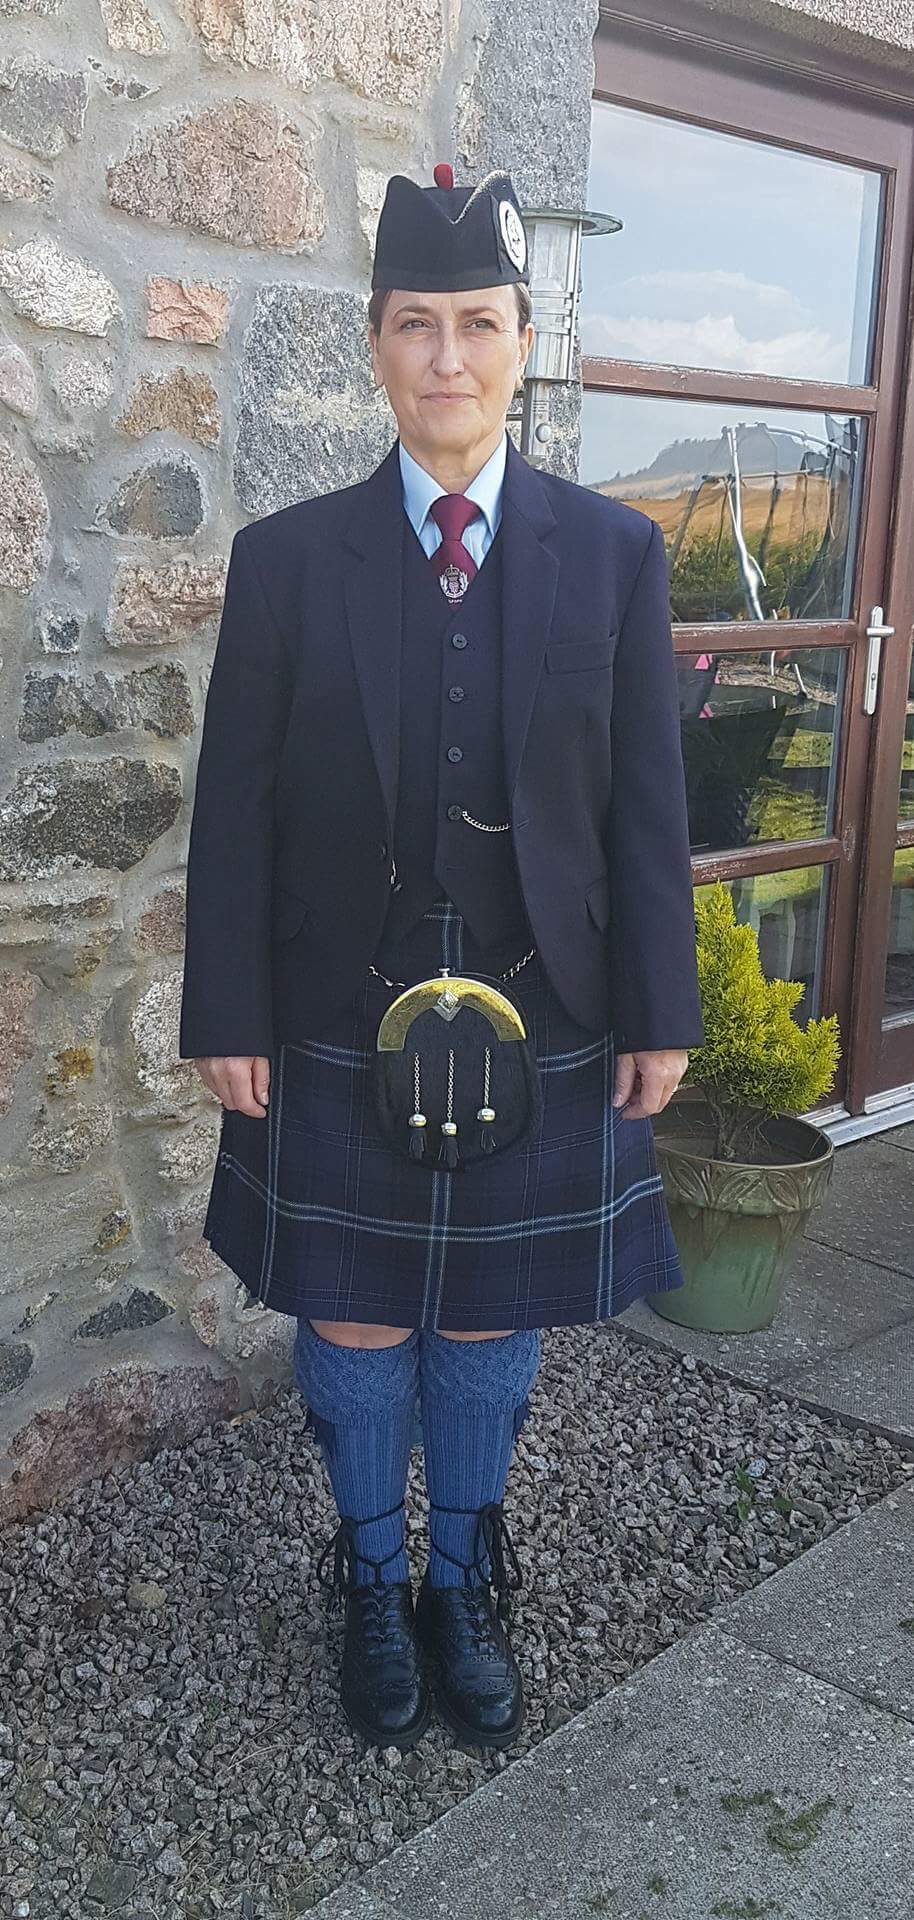 Bagpipes, uniform stolen from police pipe band |Police Pipe Band Uniforms